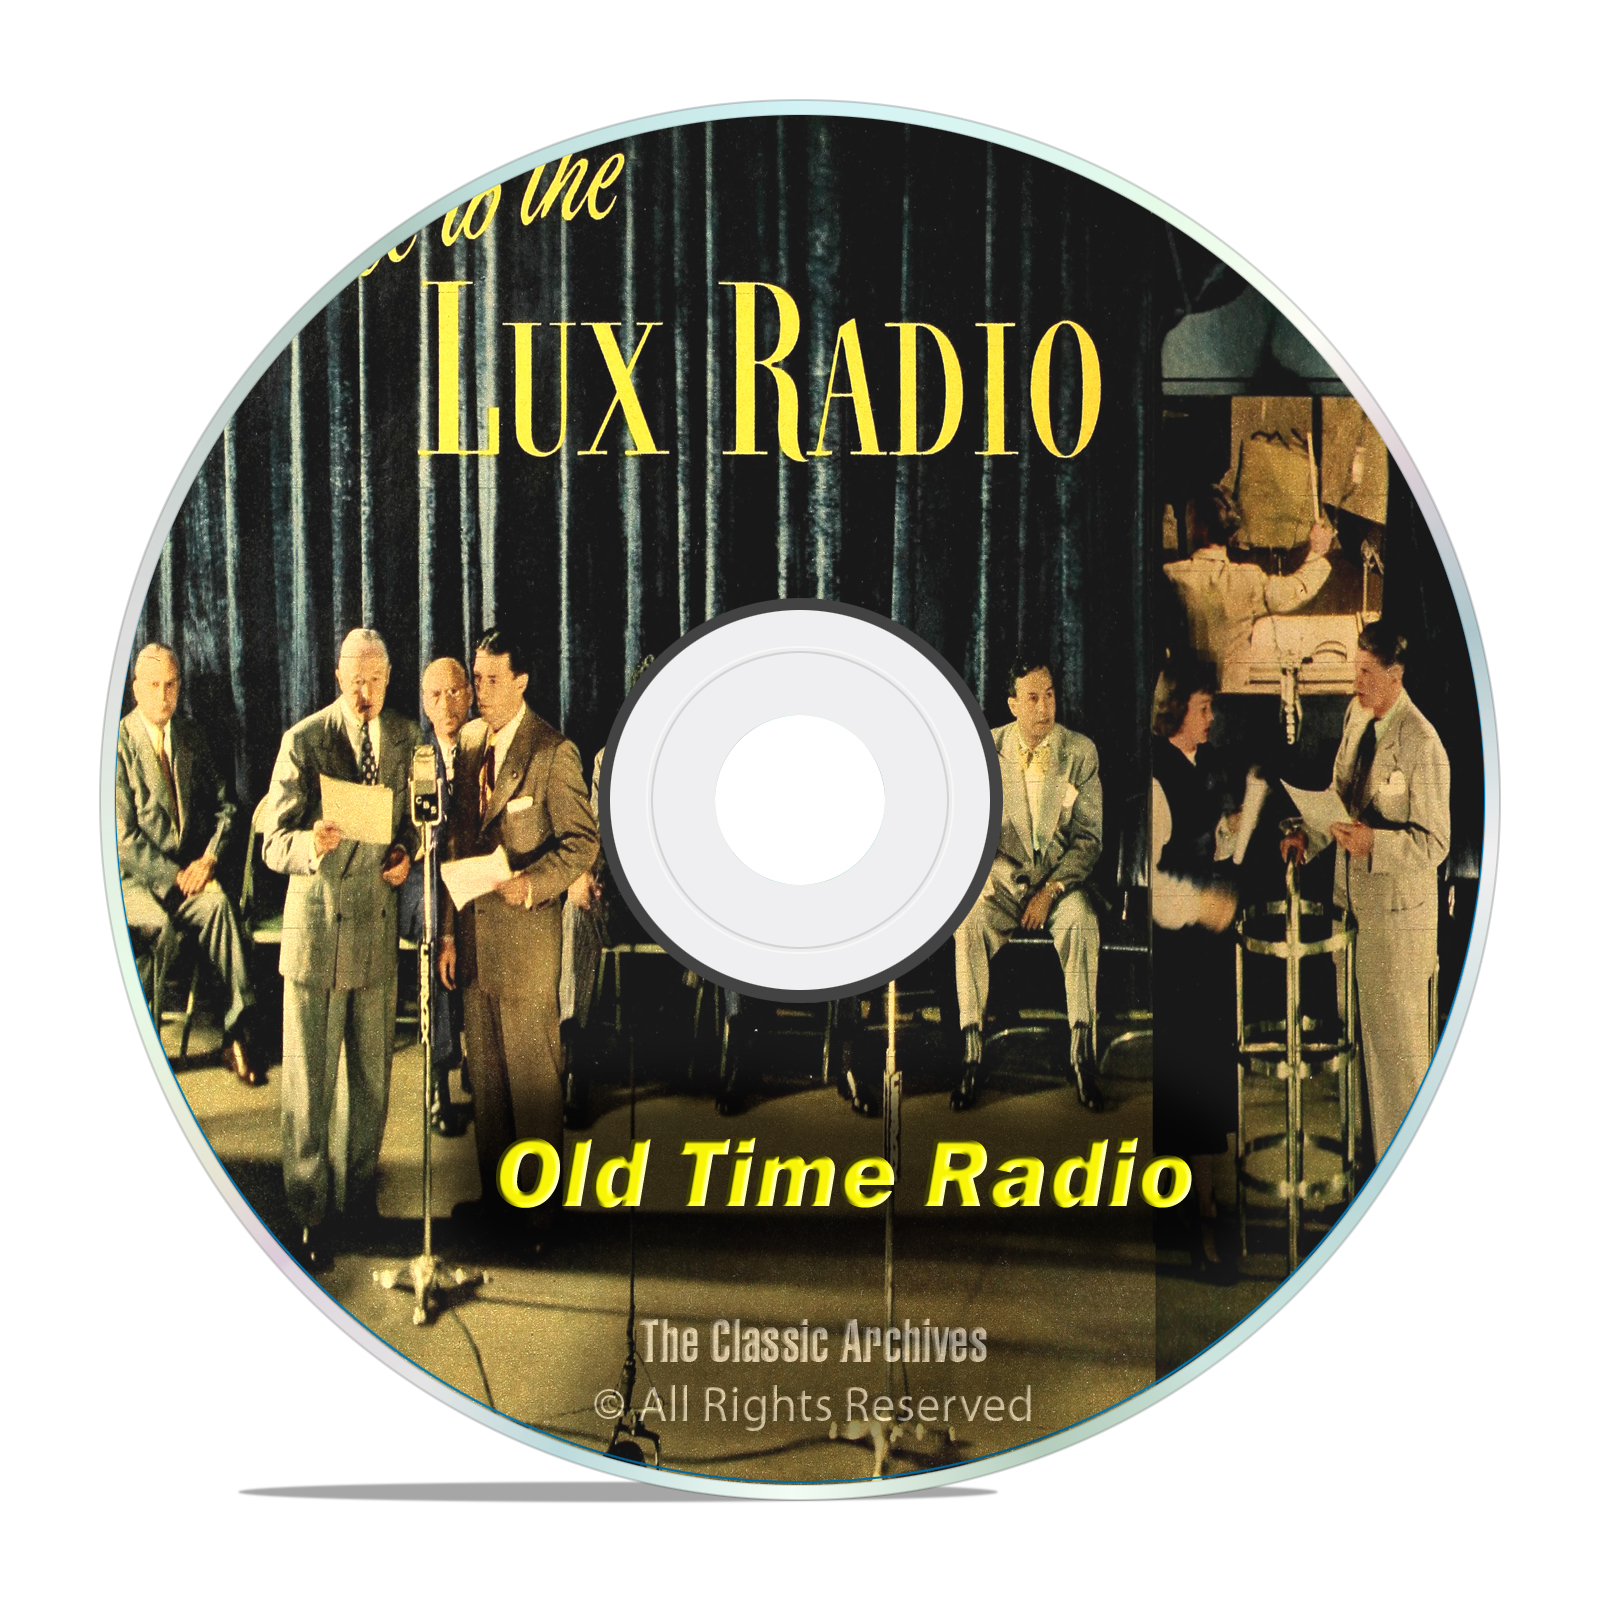 LUX RADIO THEATER, 1,369 Old Time Radio Drama Episodes, COMPLETE SET OTR